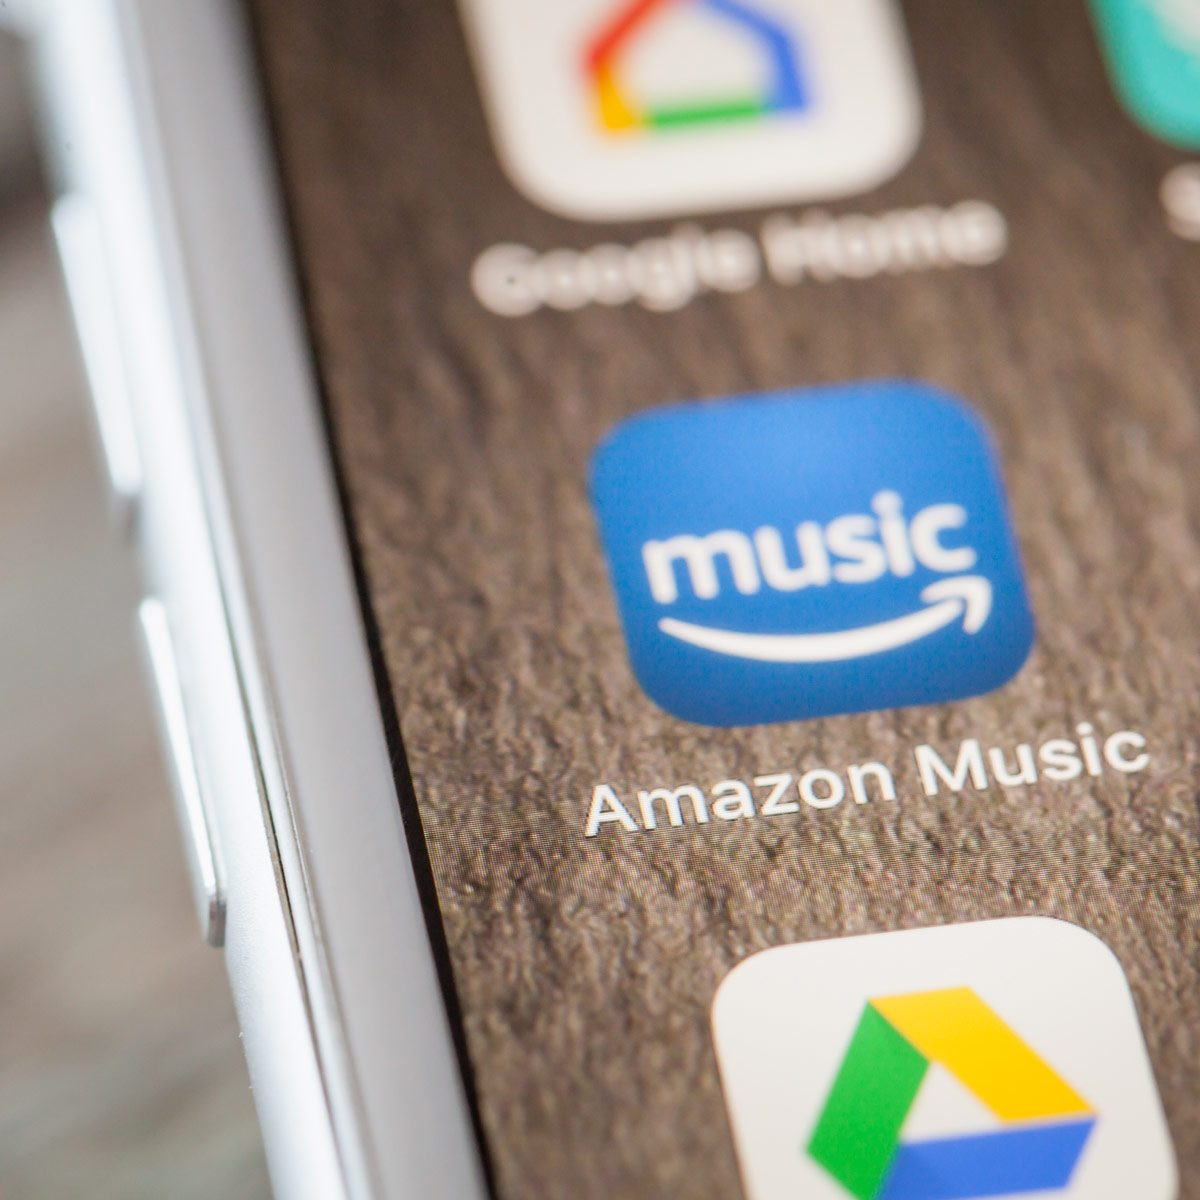 Close-up-to-Amazon-Music-app-on-the-screen-of-an-iPhone-7-Plus-with-personalized-background